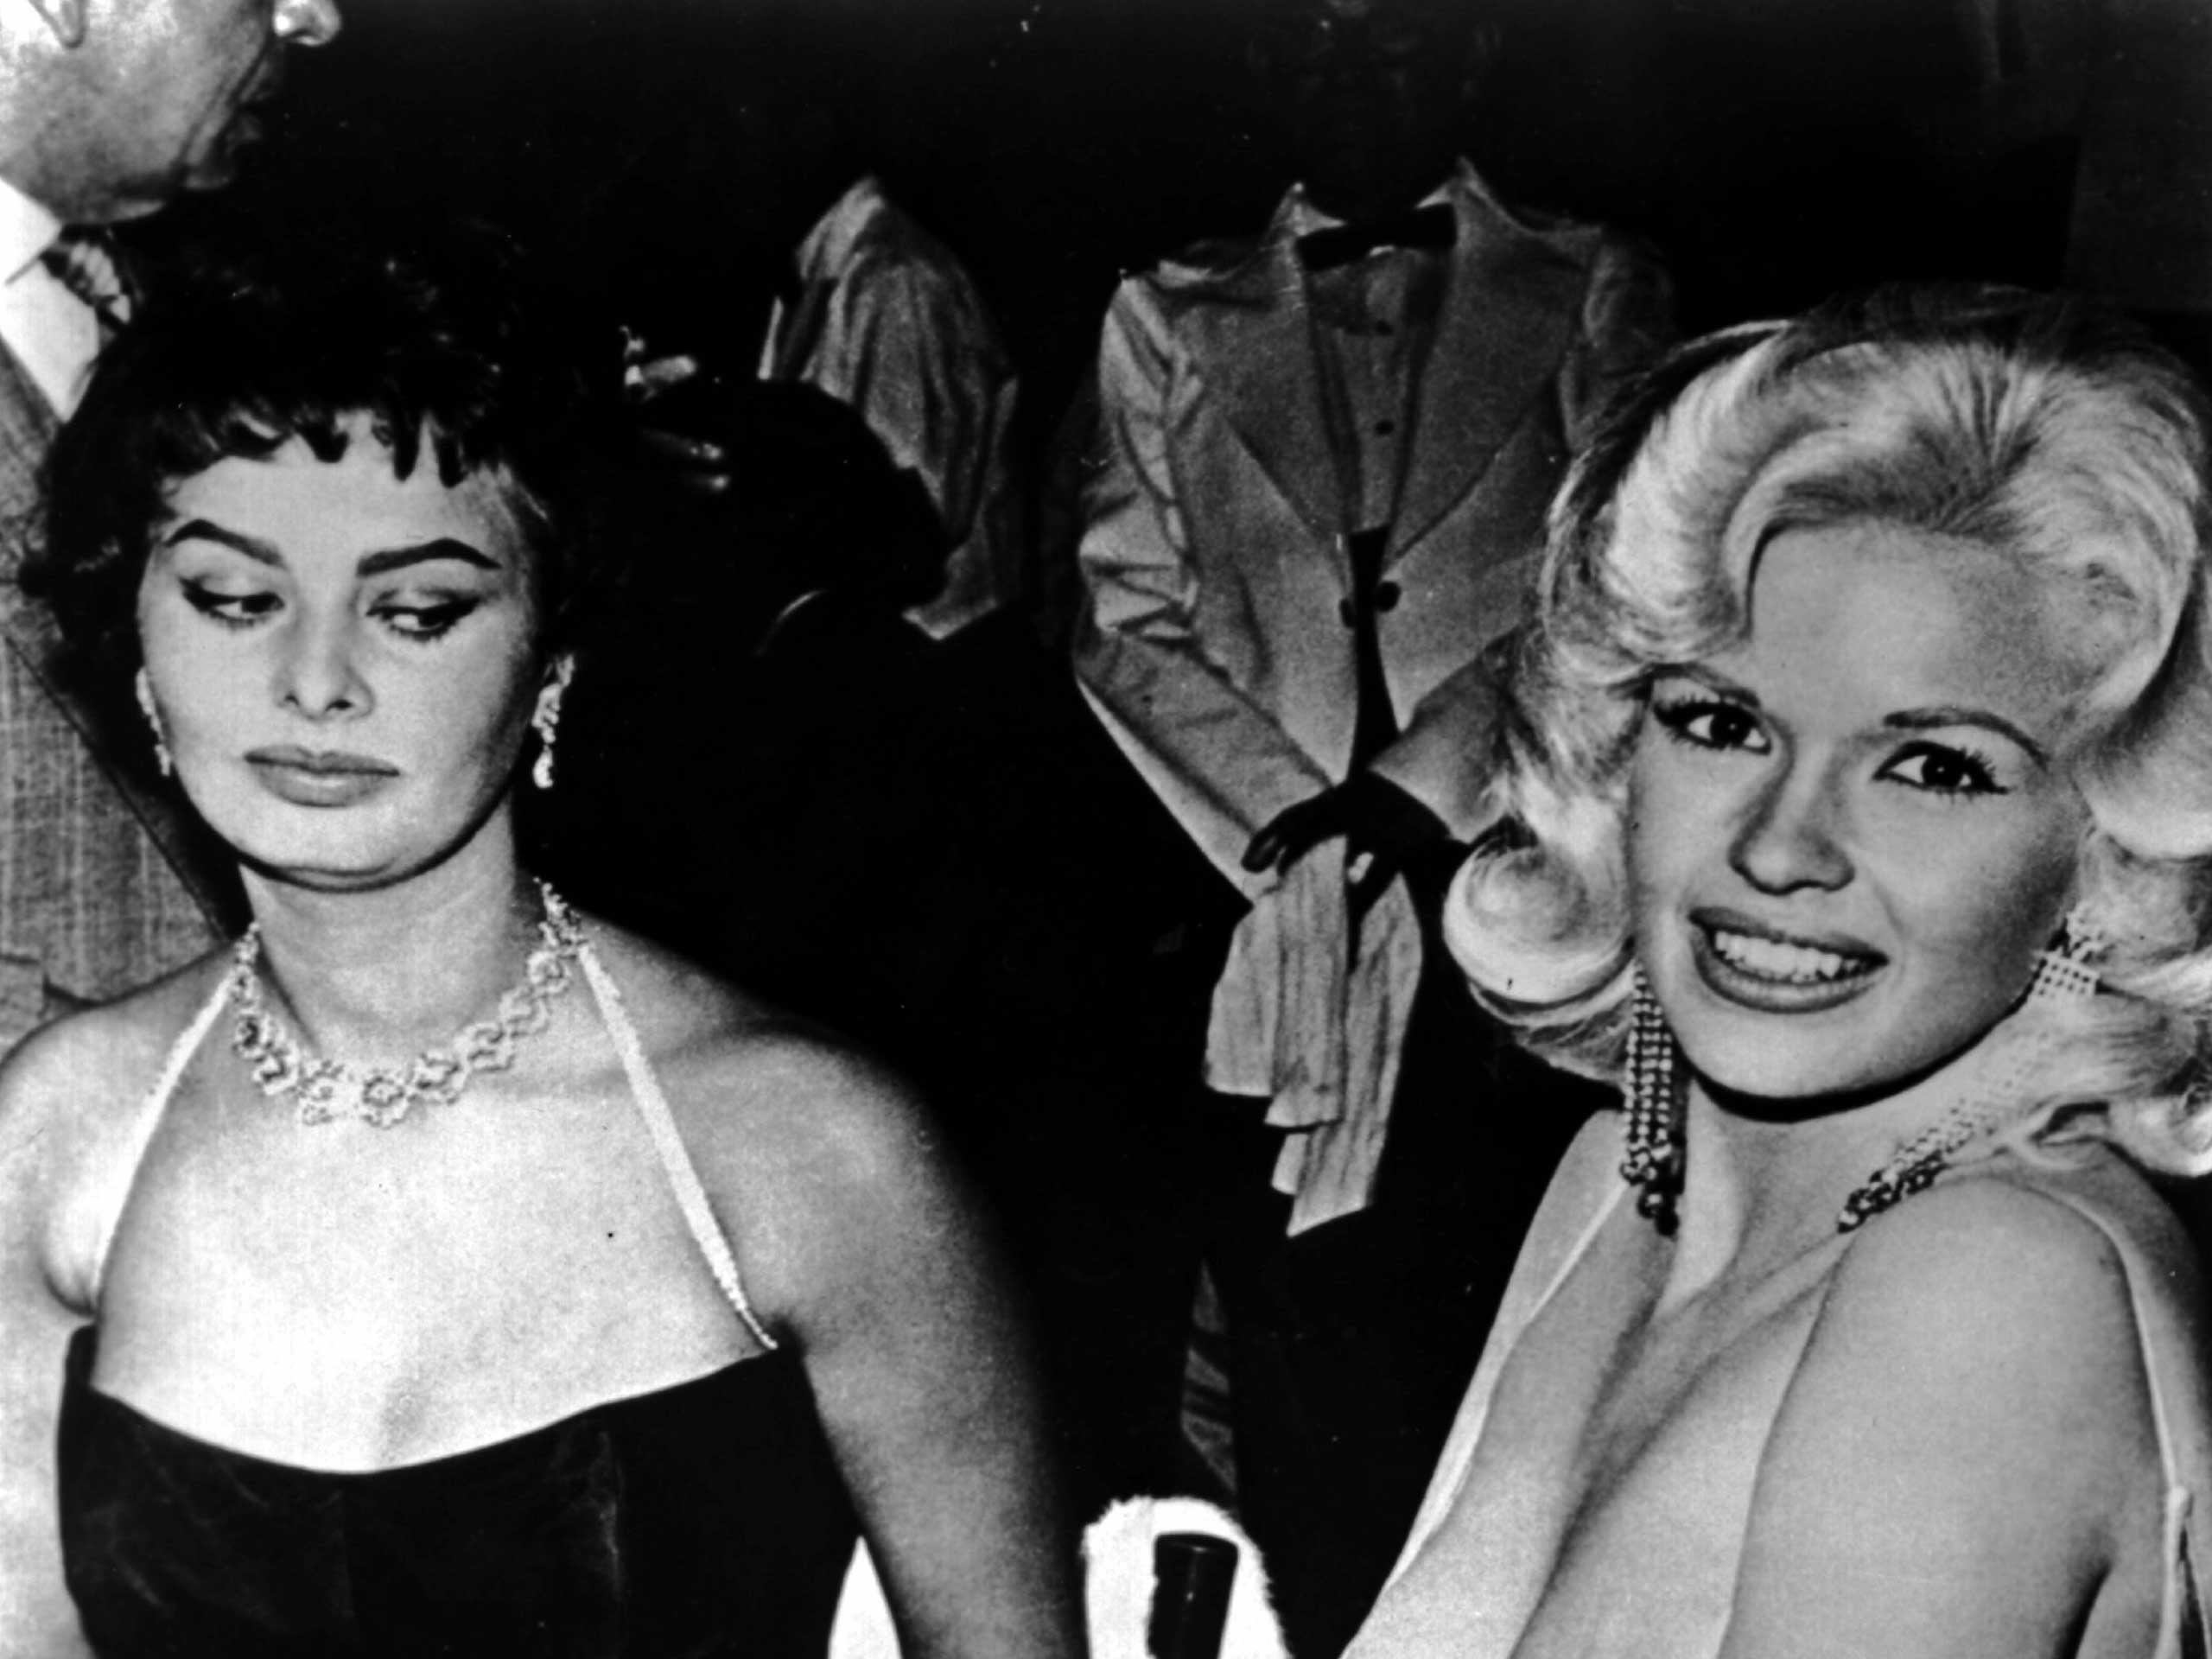 Jayne Mansfield tries to steal the show in a very low cut dress at a party thrown by 20th Century-Fox for Sophia Loren on April 12, 1957 in Los Angeles.